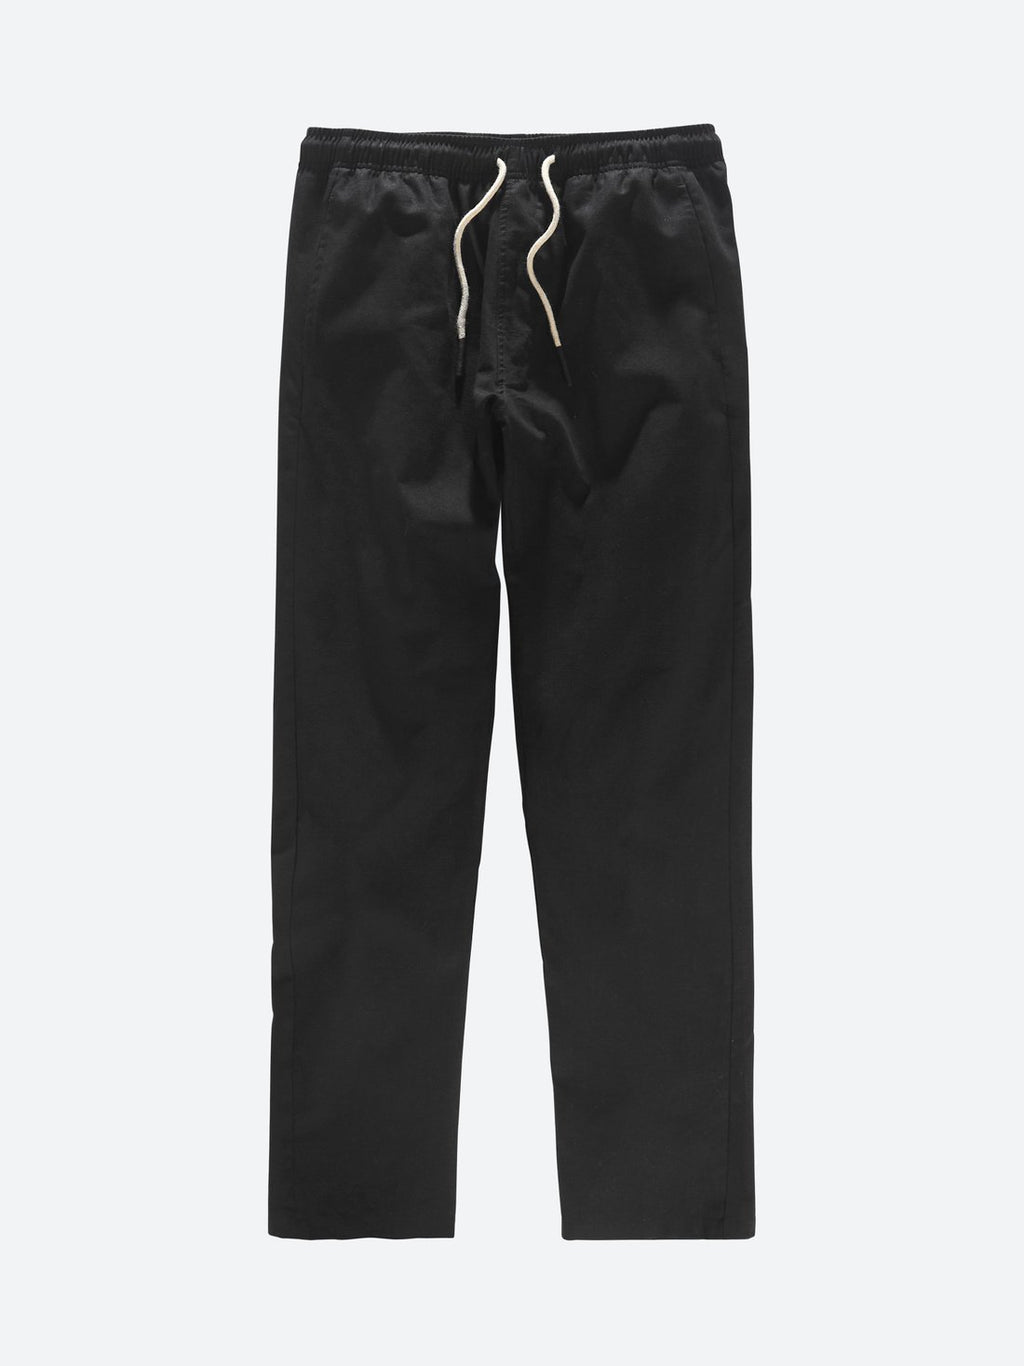 Oas Black Linen Long Pant - Mojo Independent Store